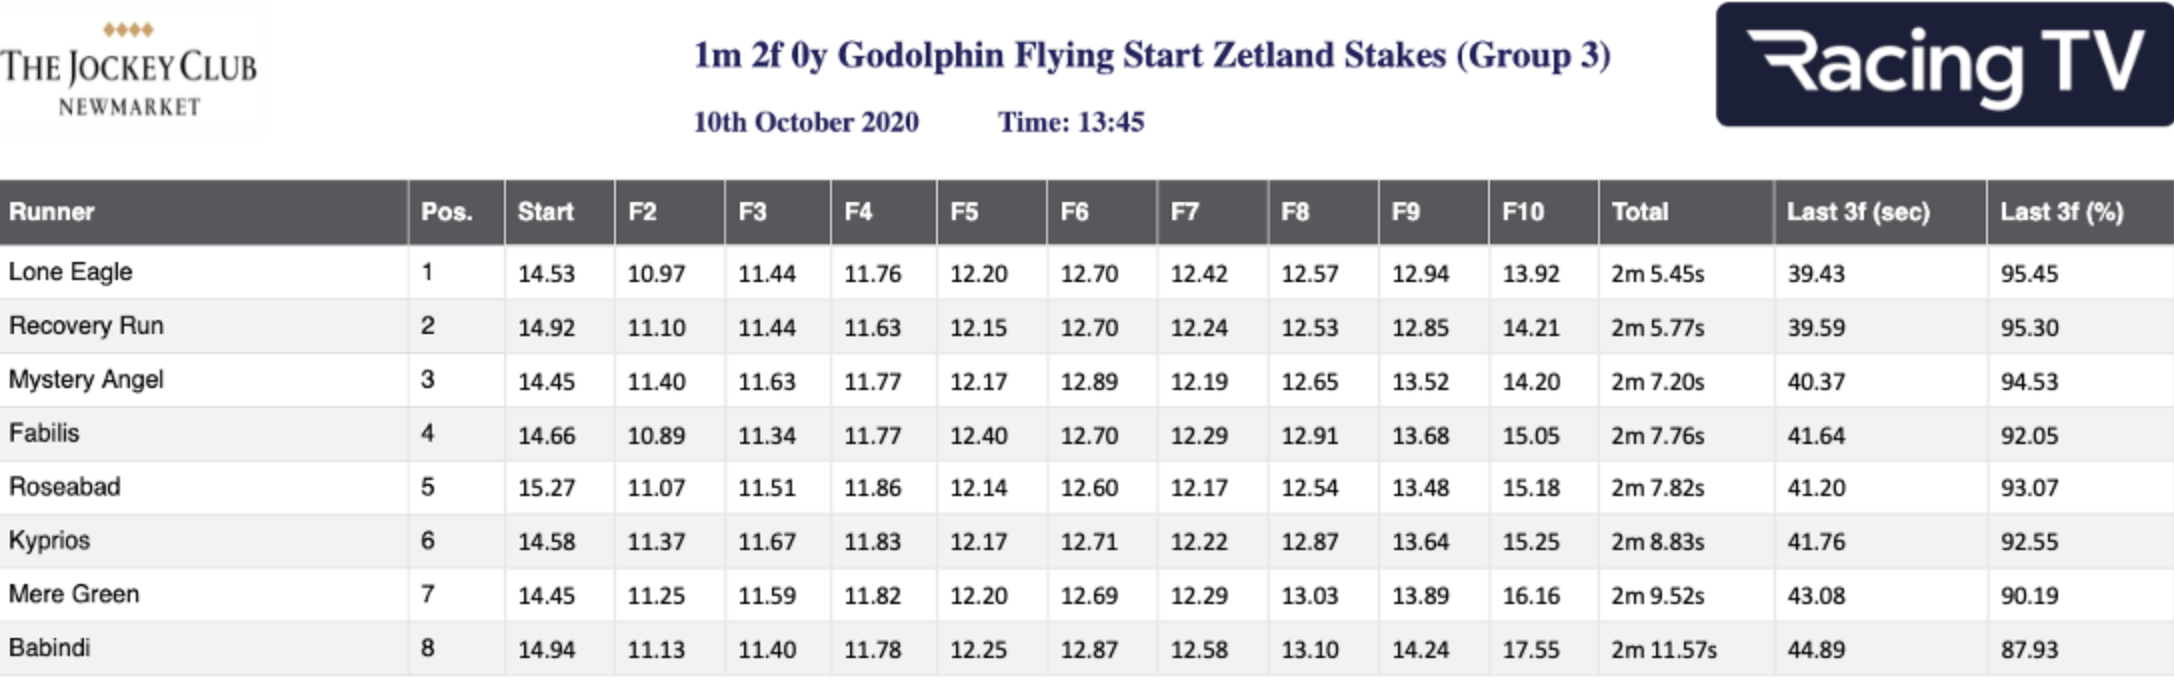 Zetland Stakes - Sectional Times